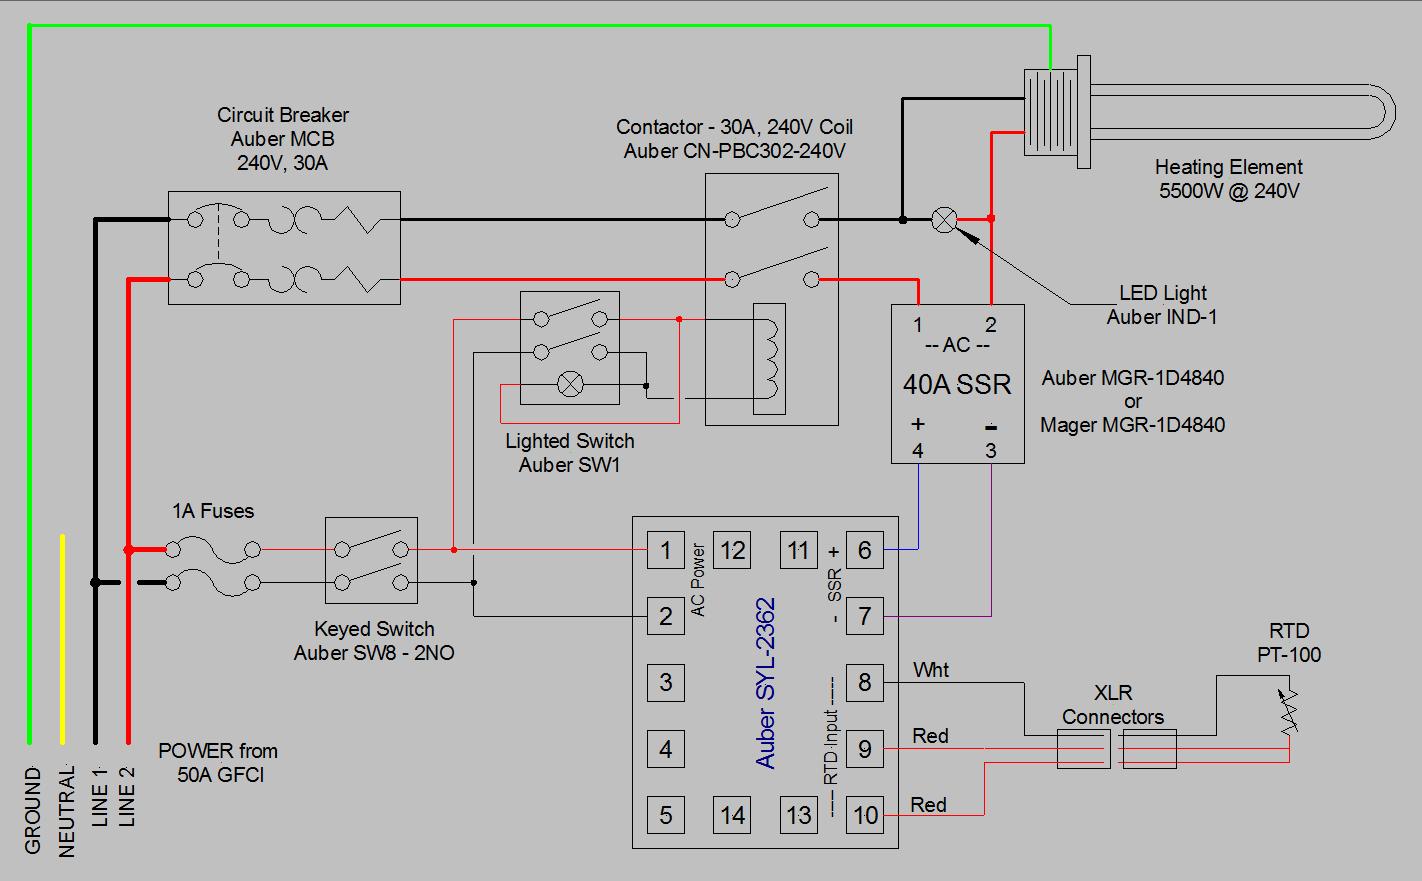 Mypin Pid Controller Wiring Diagrams Detailed Schematic Ssr Diagram For 5500w 240v Circuit And Hardware